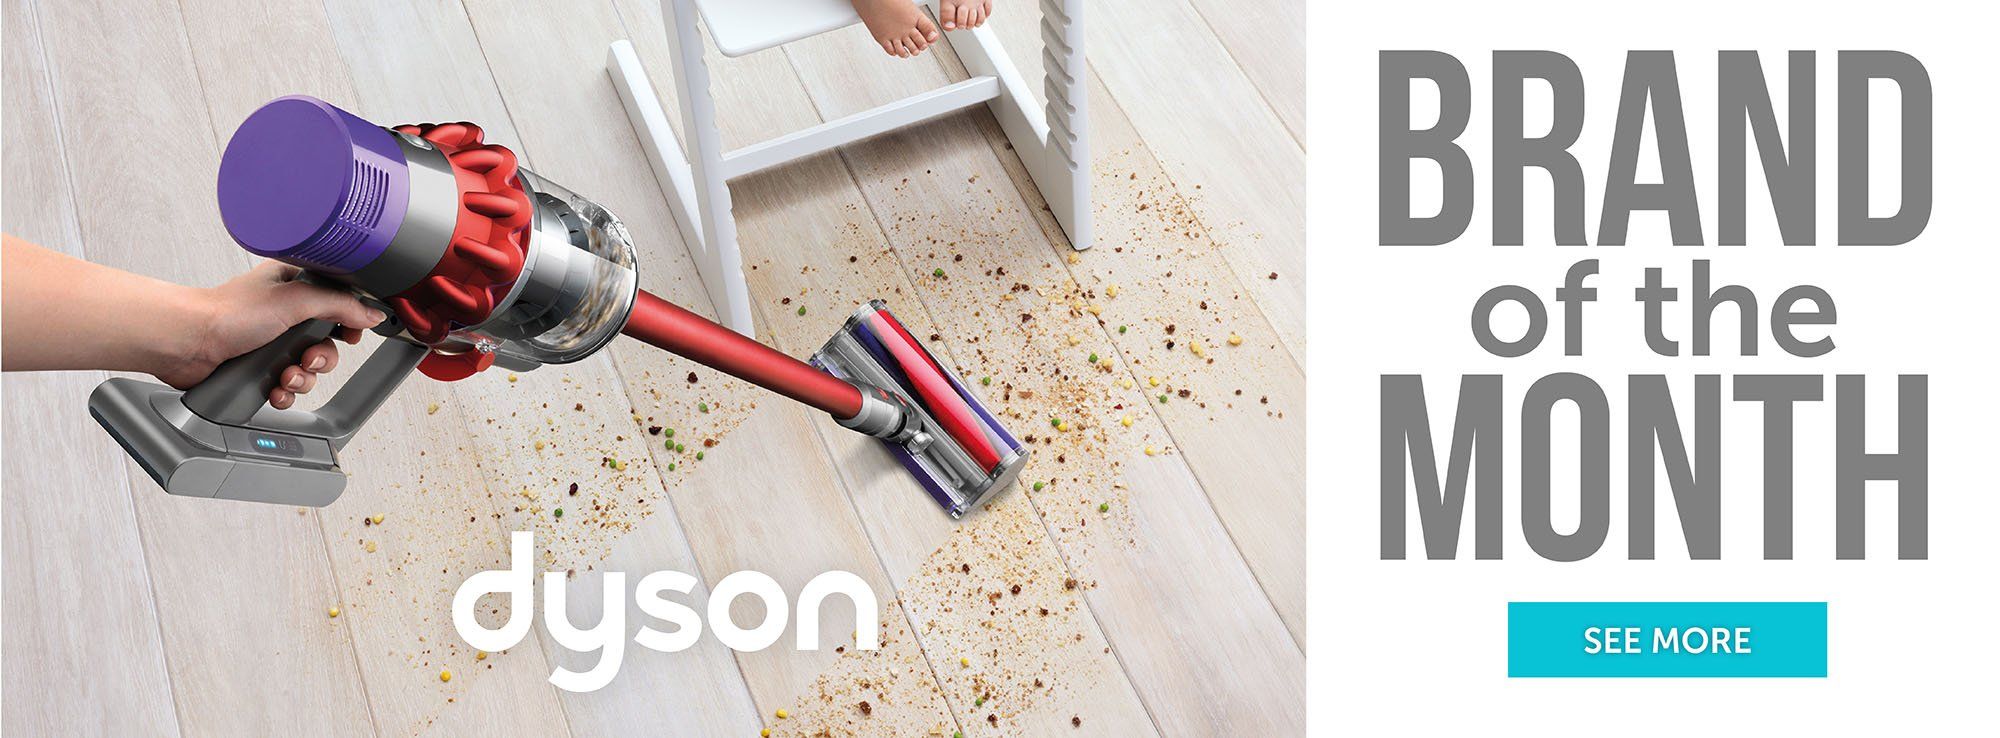 Brand of the Month-May 2018-Dyson